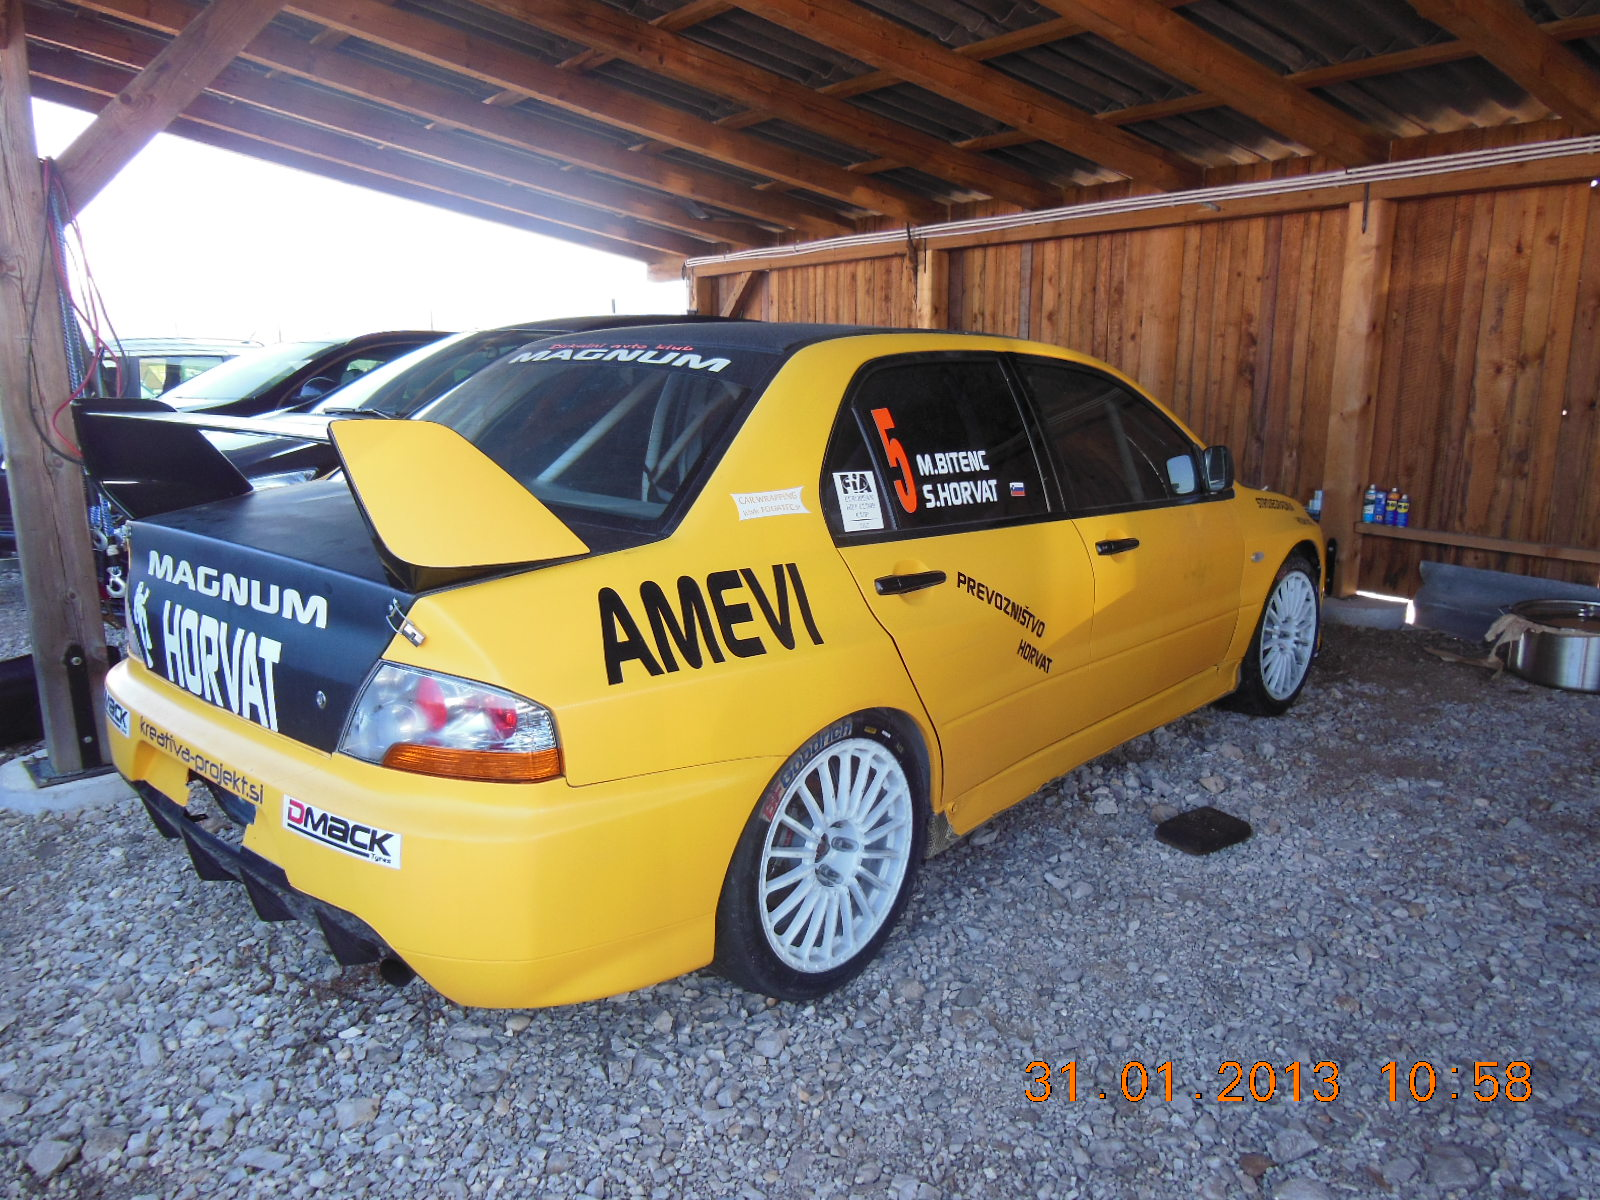 mitsubishi lancer evo 9 rally cars for sale at raced rallied rally cars for sale race. Black Bedroom Furniture Sets. Home Design Ideas